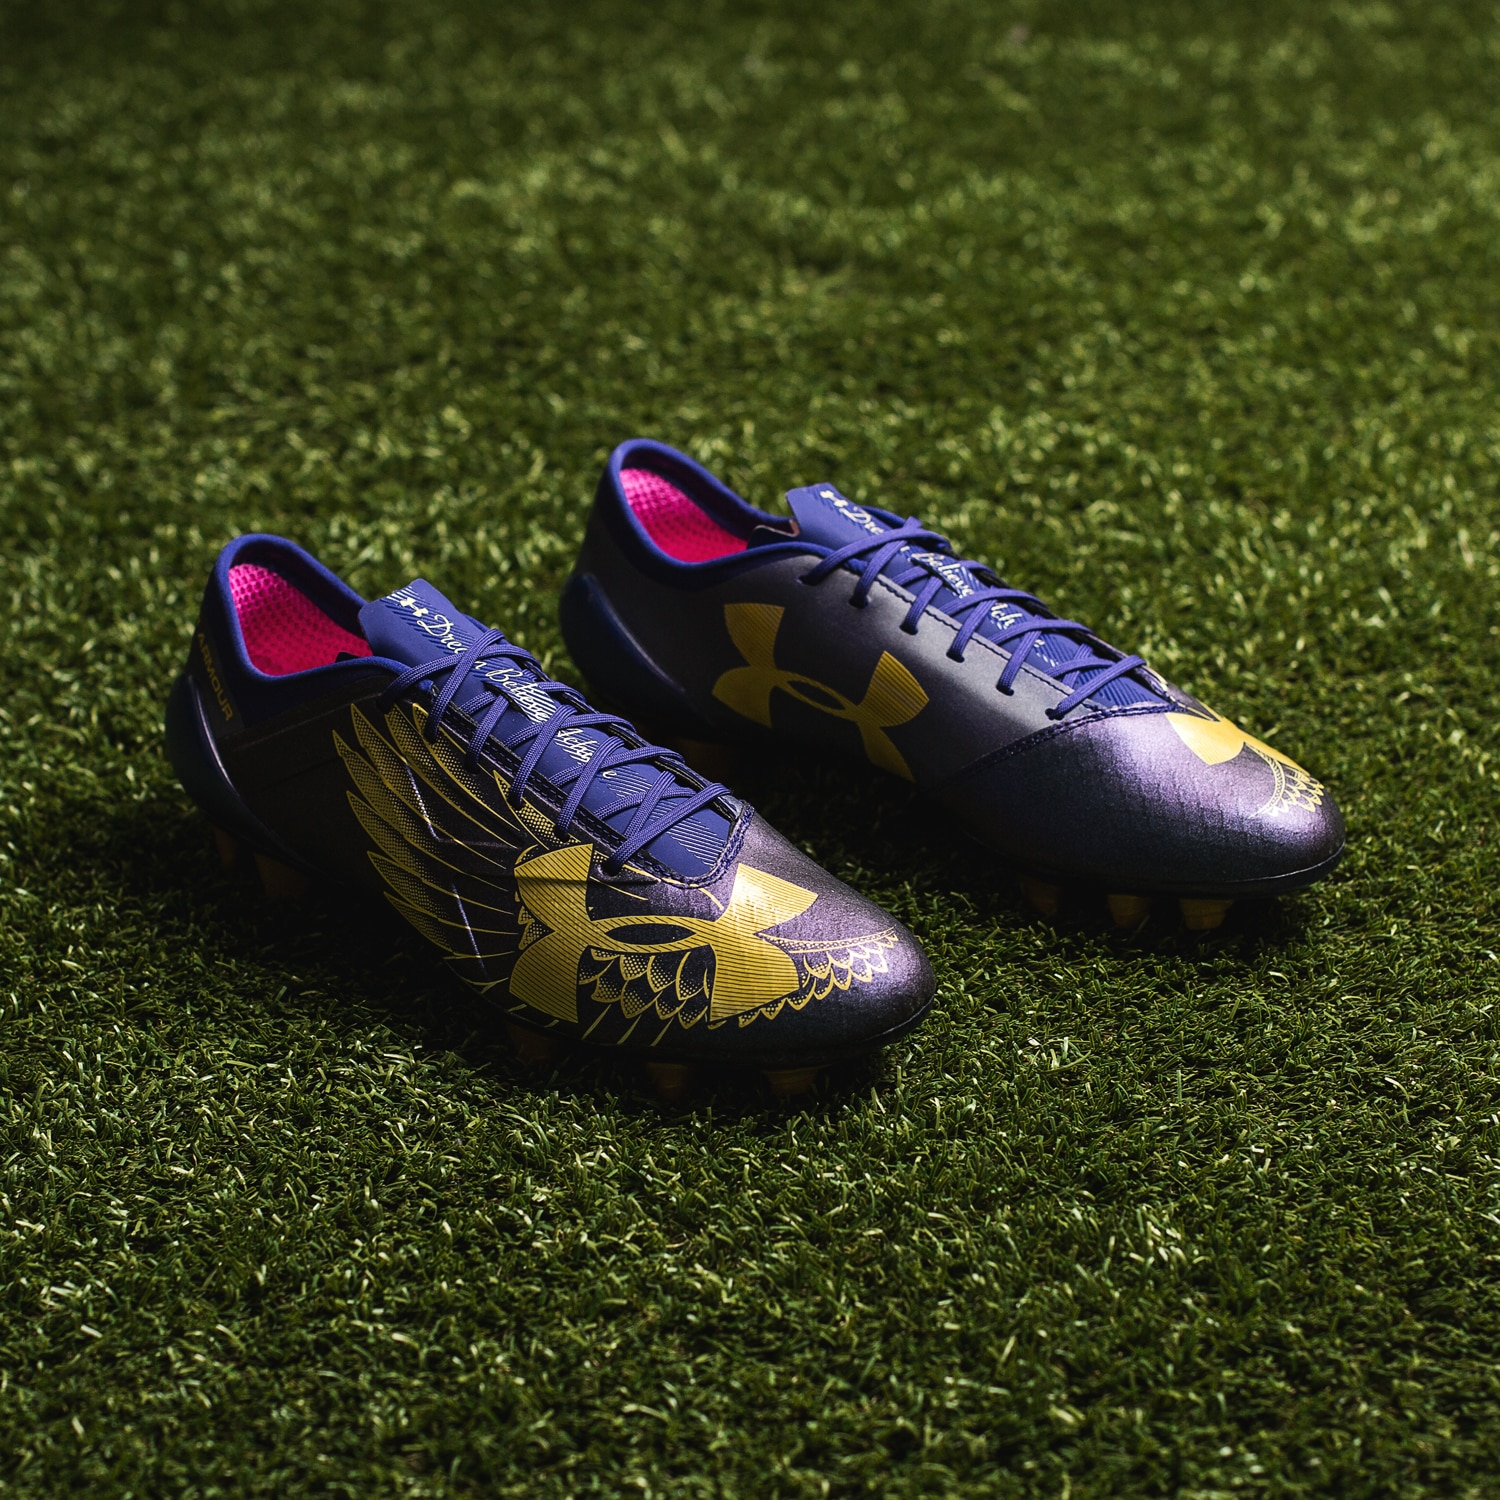 chaussures-football-Under-Armour-DreamChaser-2-0-4